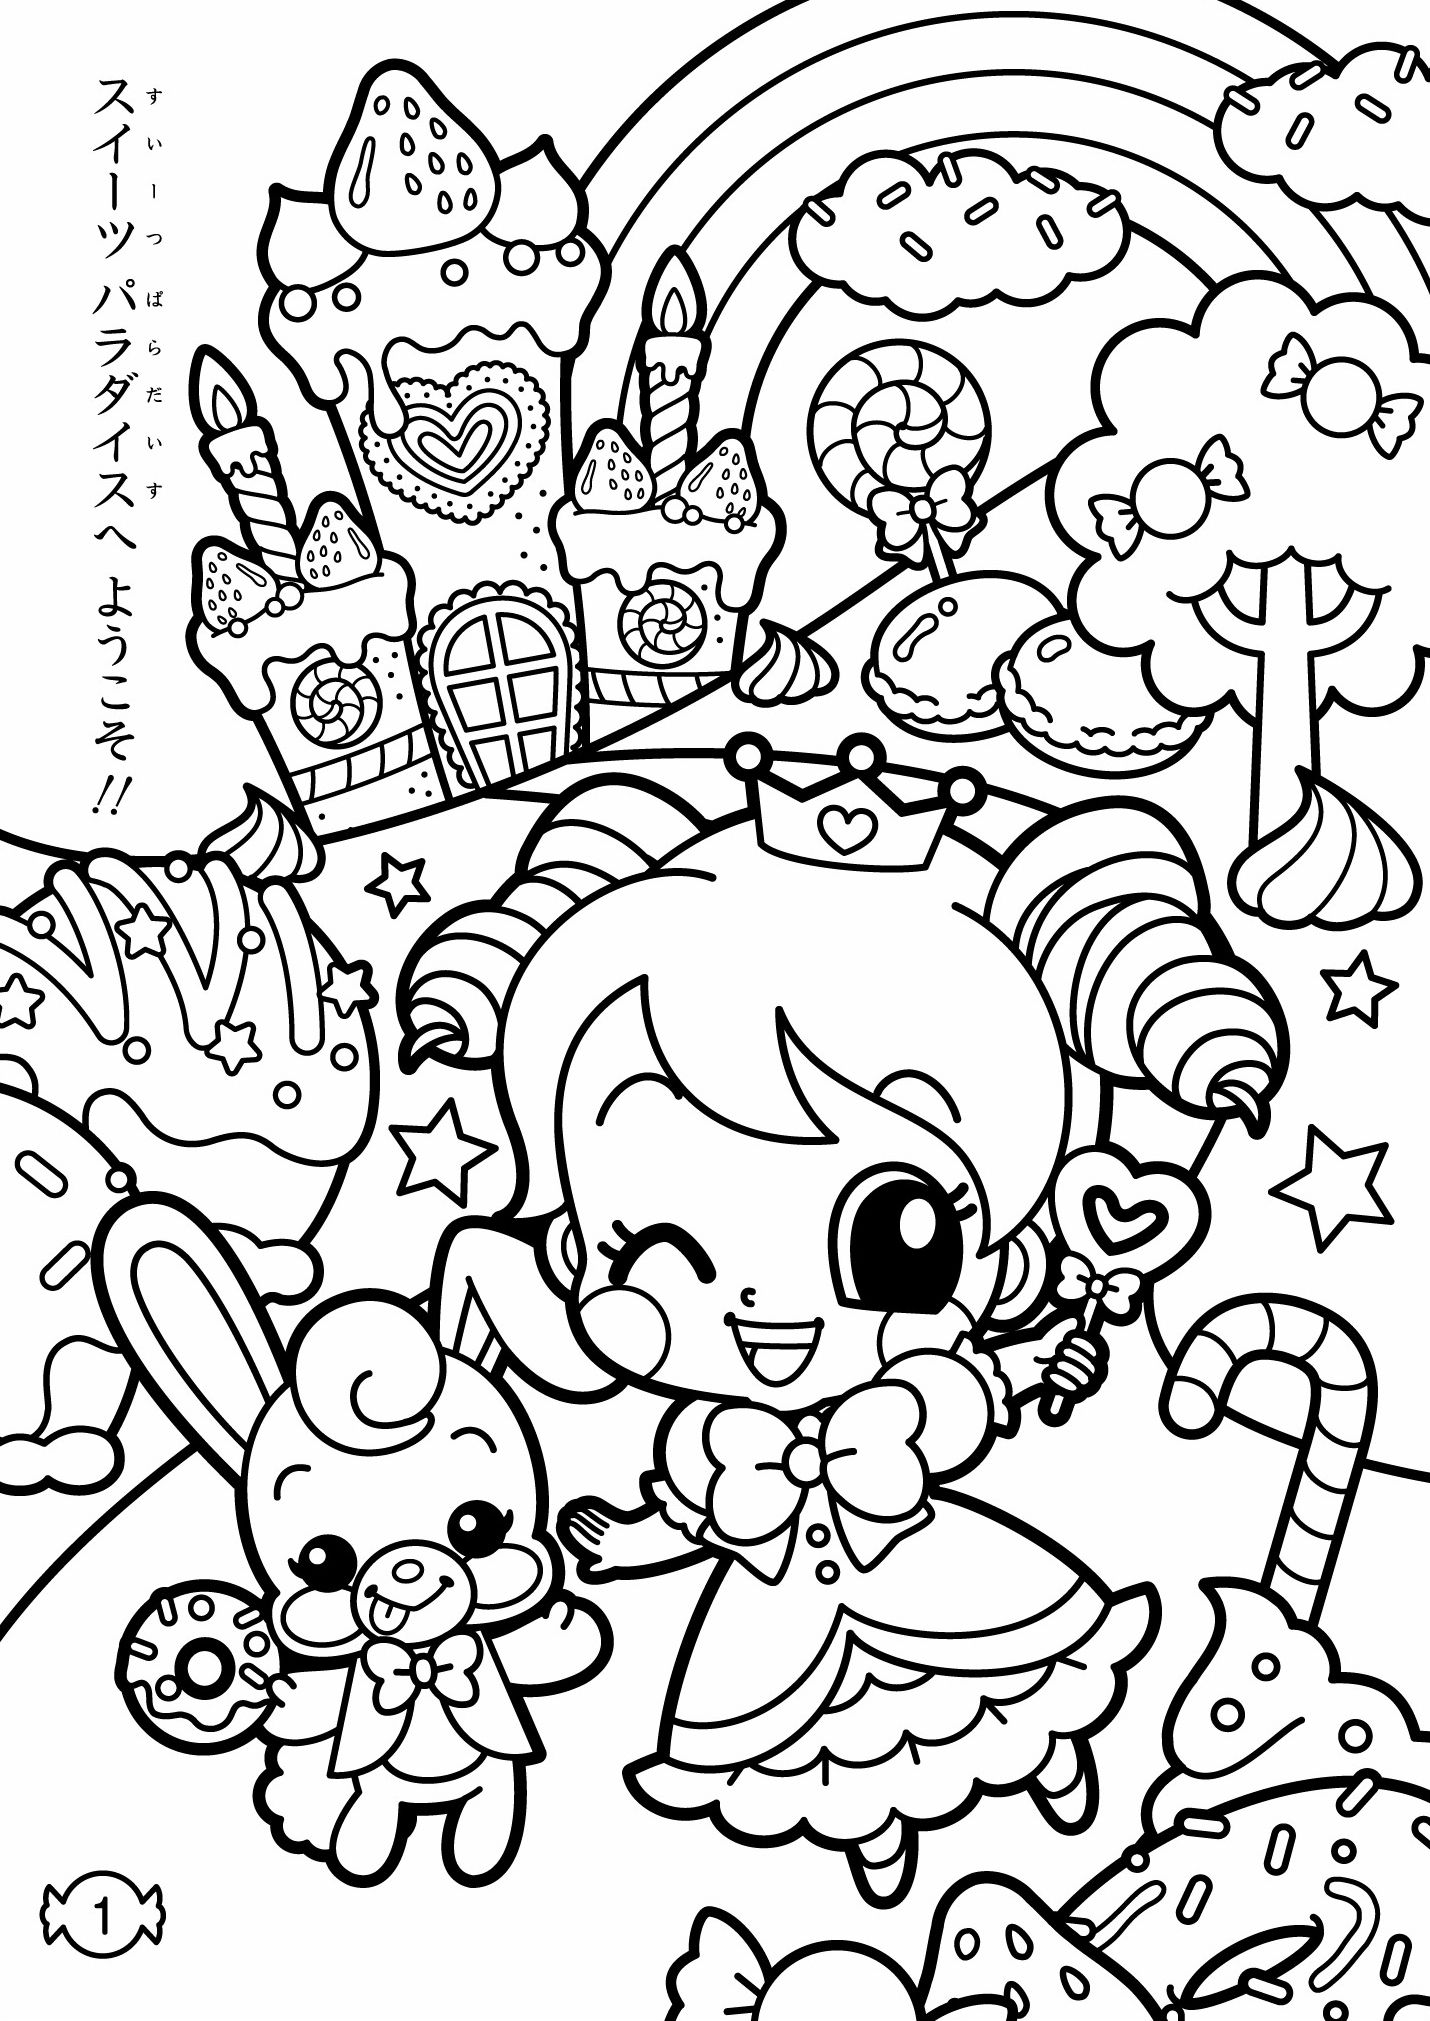 Kawaii Kids Coloring Pages Pinterest Coloring Pages Coloring